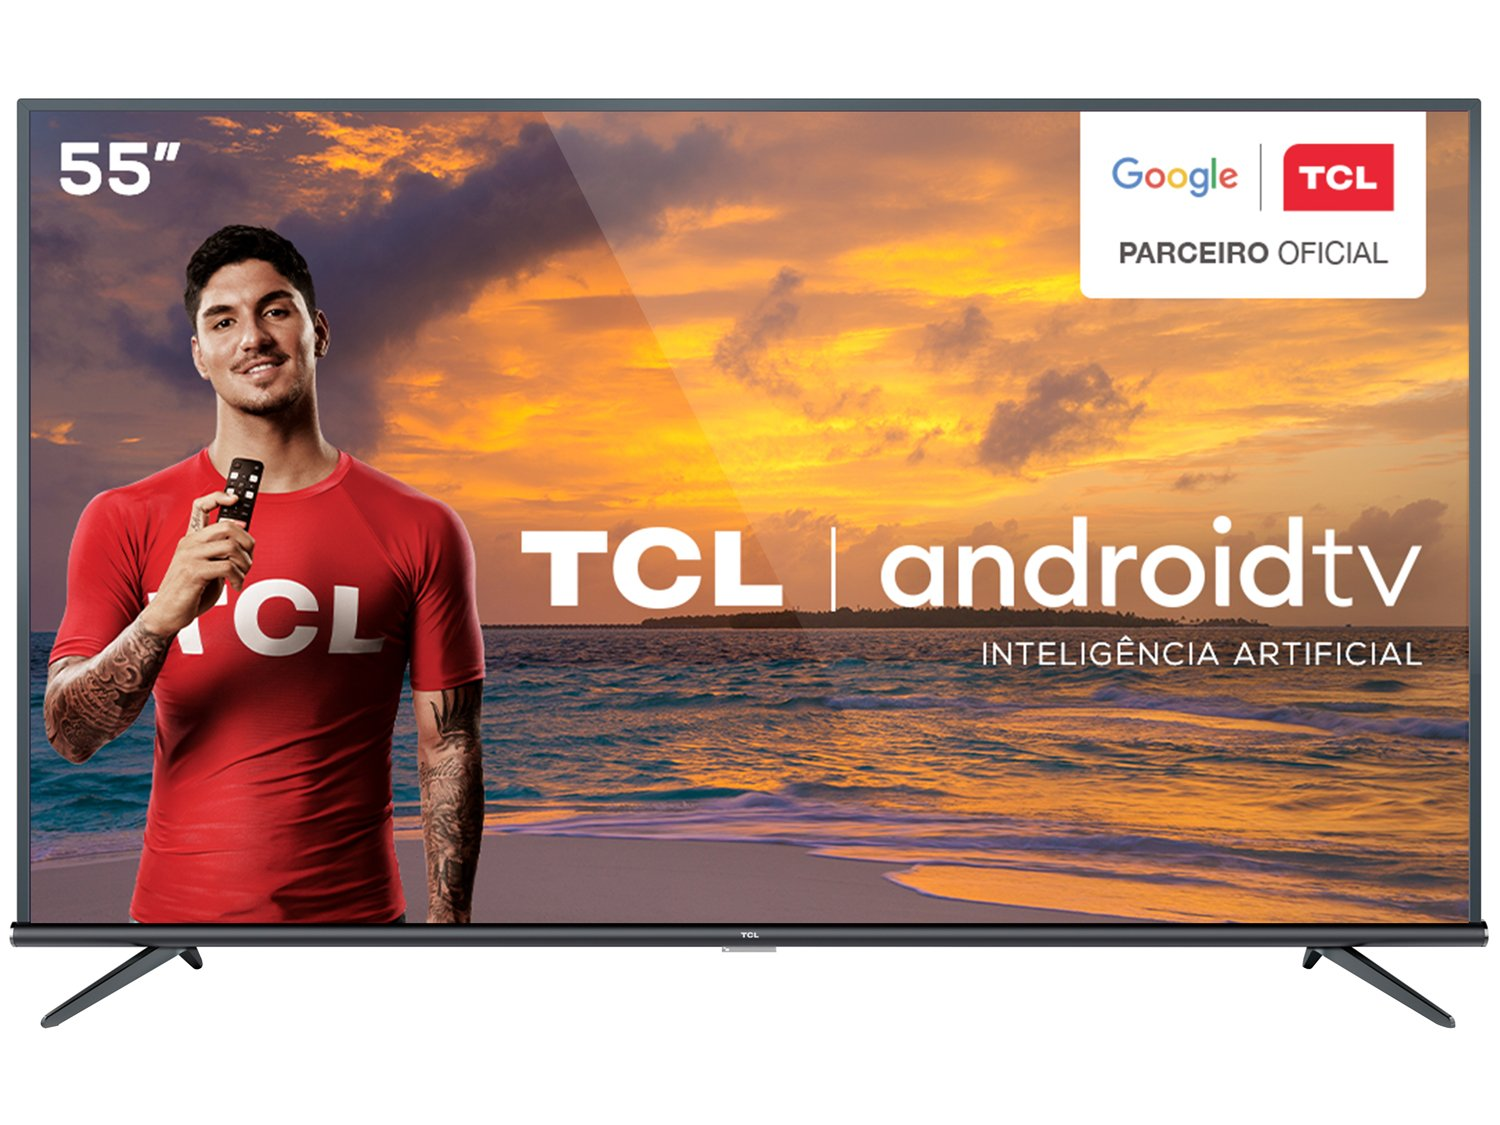 "Smart TV LED 55"" 4K TCL 55P8M com Android TV, Controle Remoto Comando de Voz, HDR, Micro Dimming, Google Assistant, Bluetooth, HDMI e USB - 15"